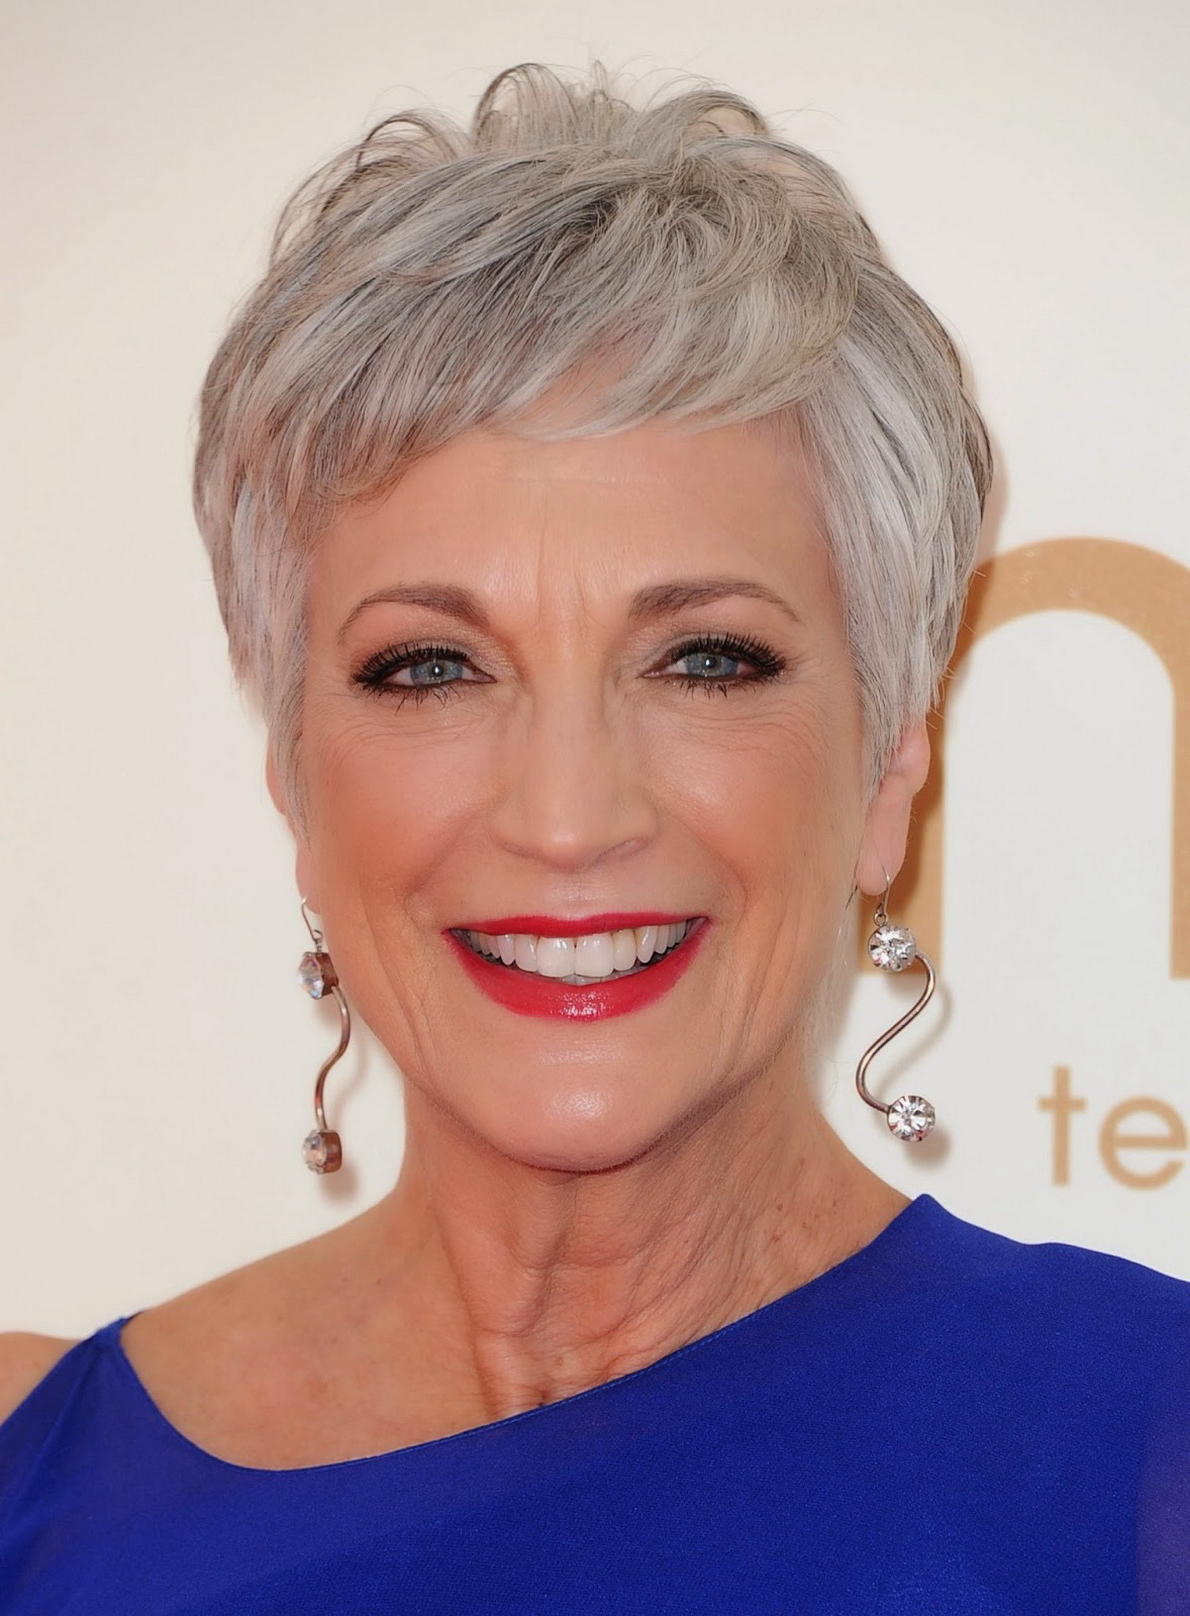 Short Haircuts Women Over 50 Very Short Hairstyles For Women Over 50 Inside Short Haircuts Women Over  (View 21 of 25)